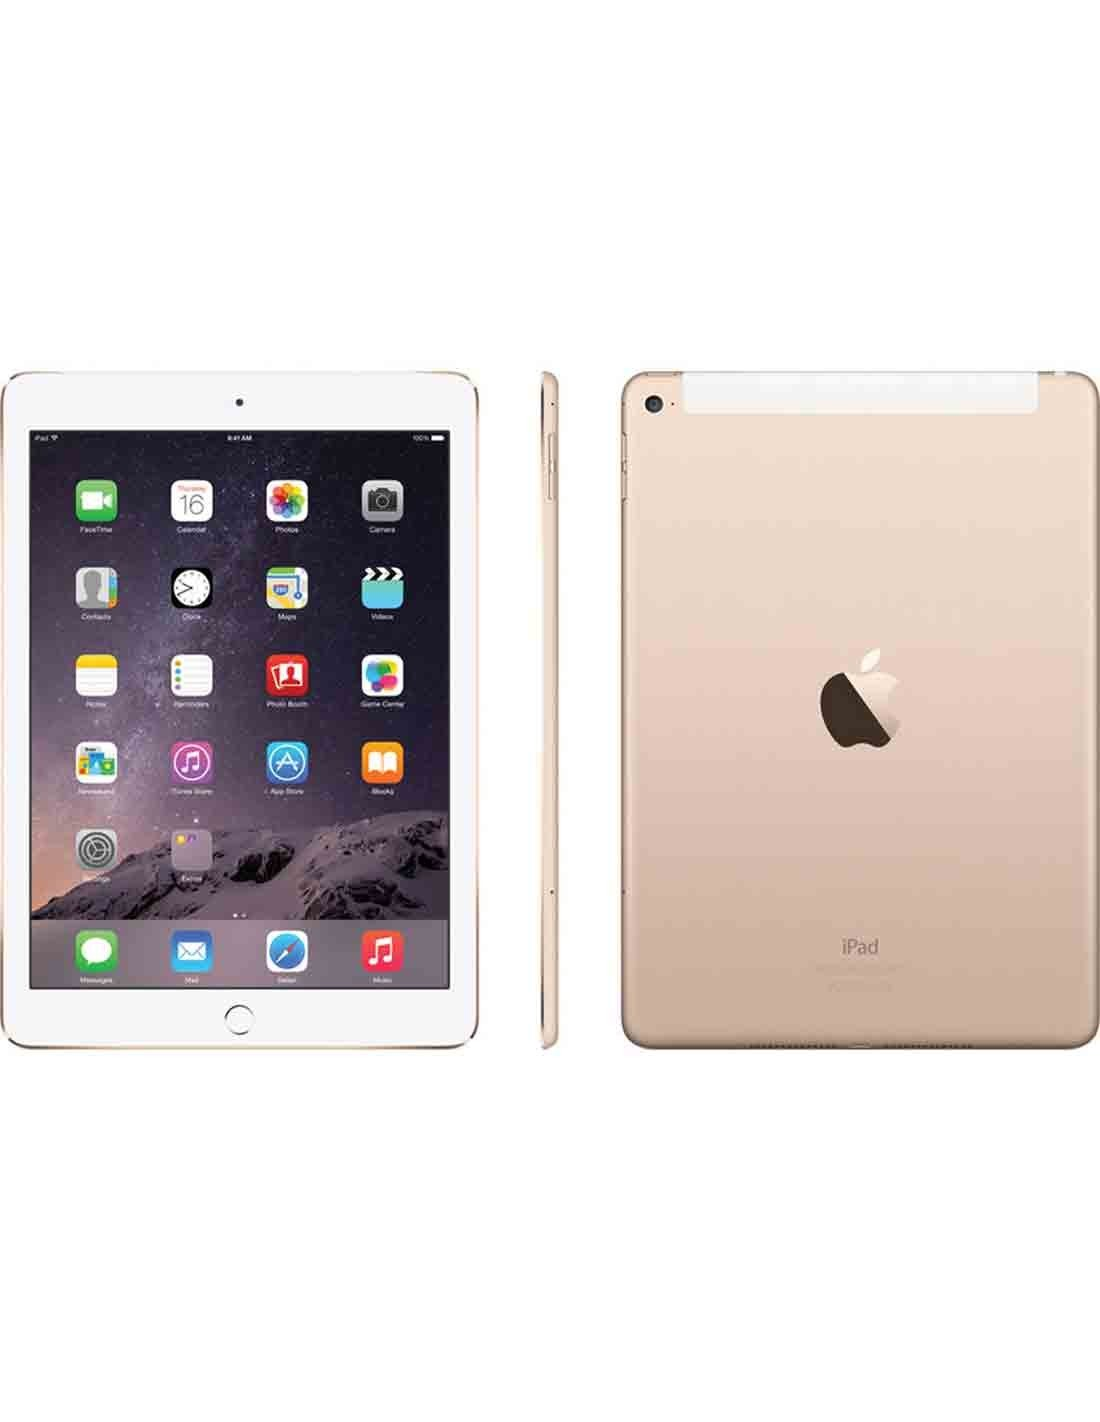 Apple iPad Air 2 WiFi and Cellular 128GB - Gold MH1G2B/A at a Cheap Price in Dubai Online Store